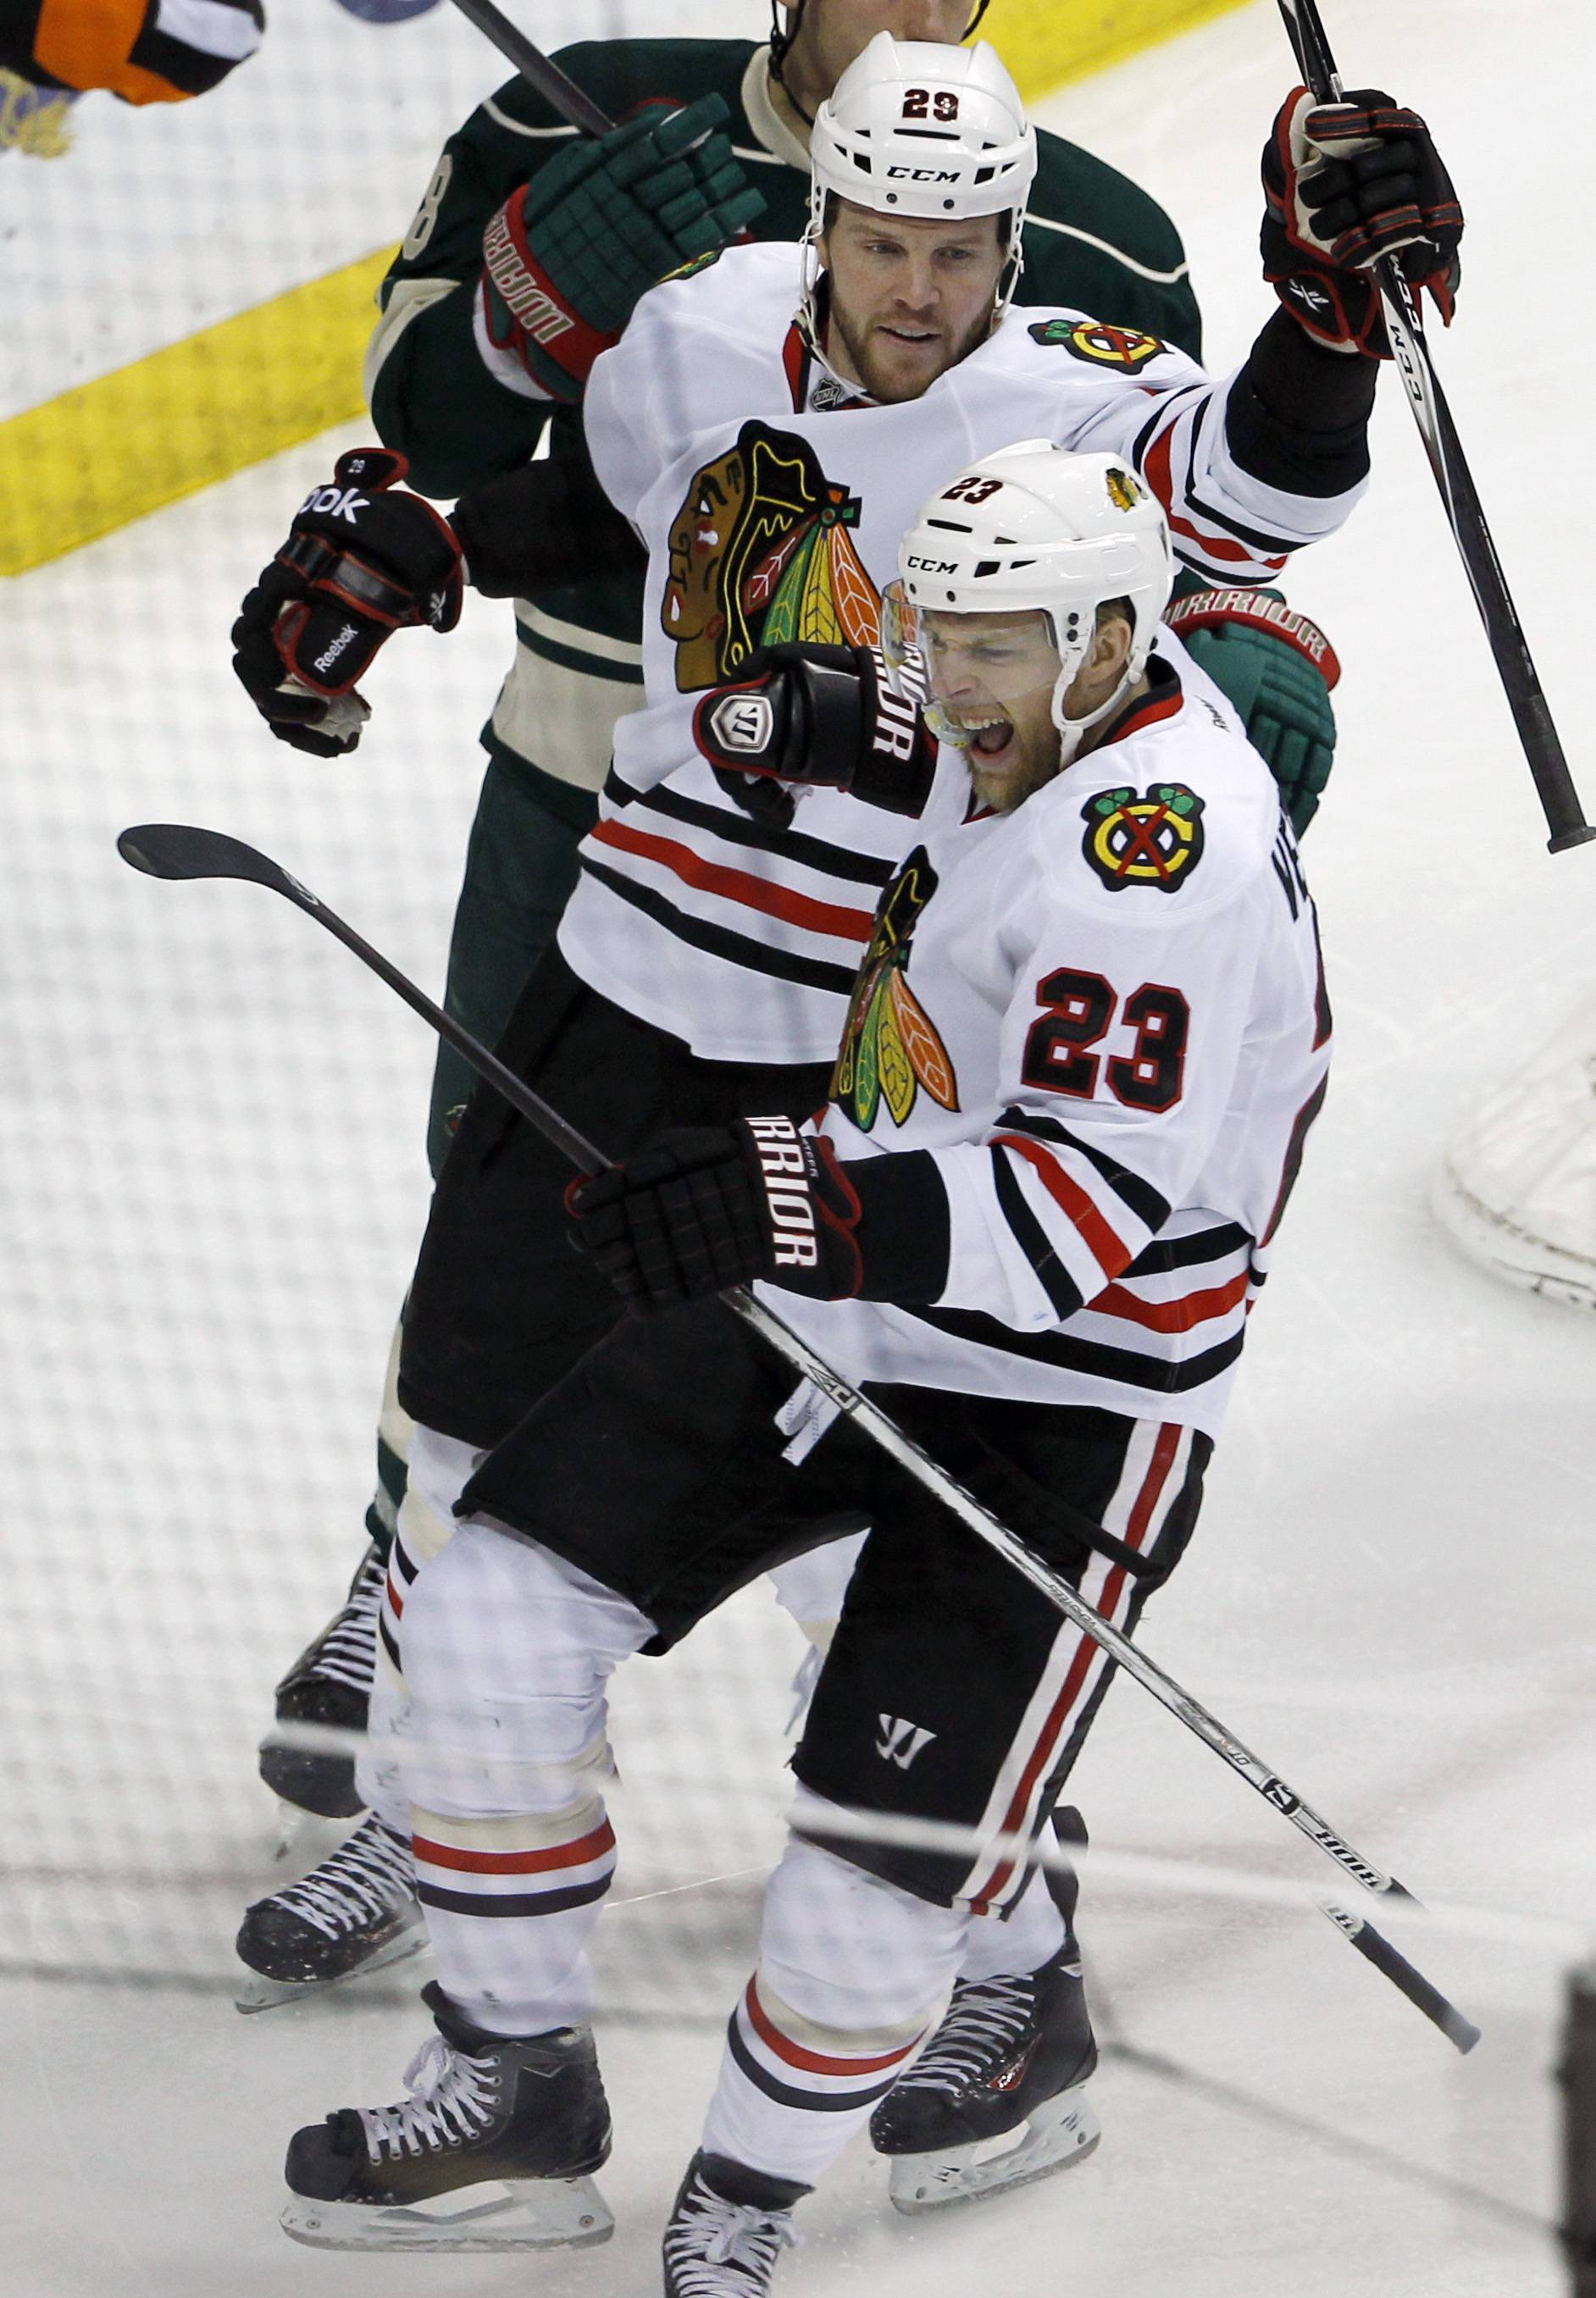 Chicago Blackhawks right wing Kris Versteeg (23) reacts in front of Blackhawks left wing Brandon Saad (20) after scoring on Minnesota Wild goalie Ilya Bryzgalov during the first period .